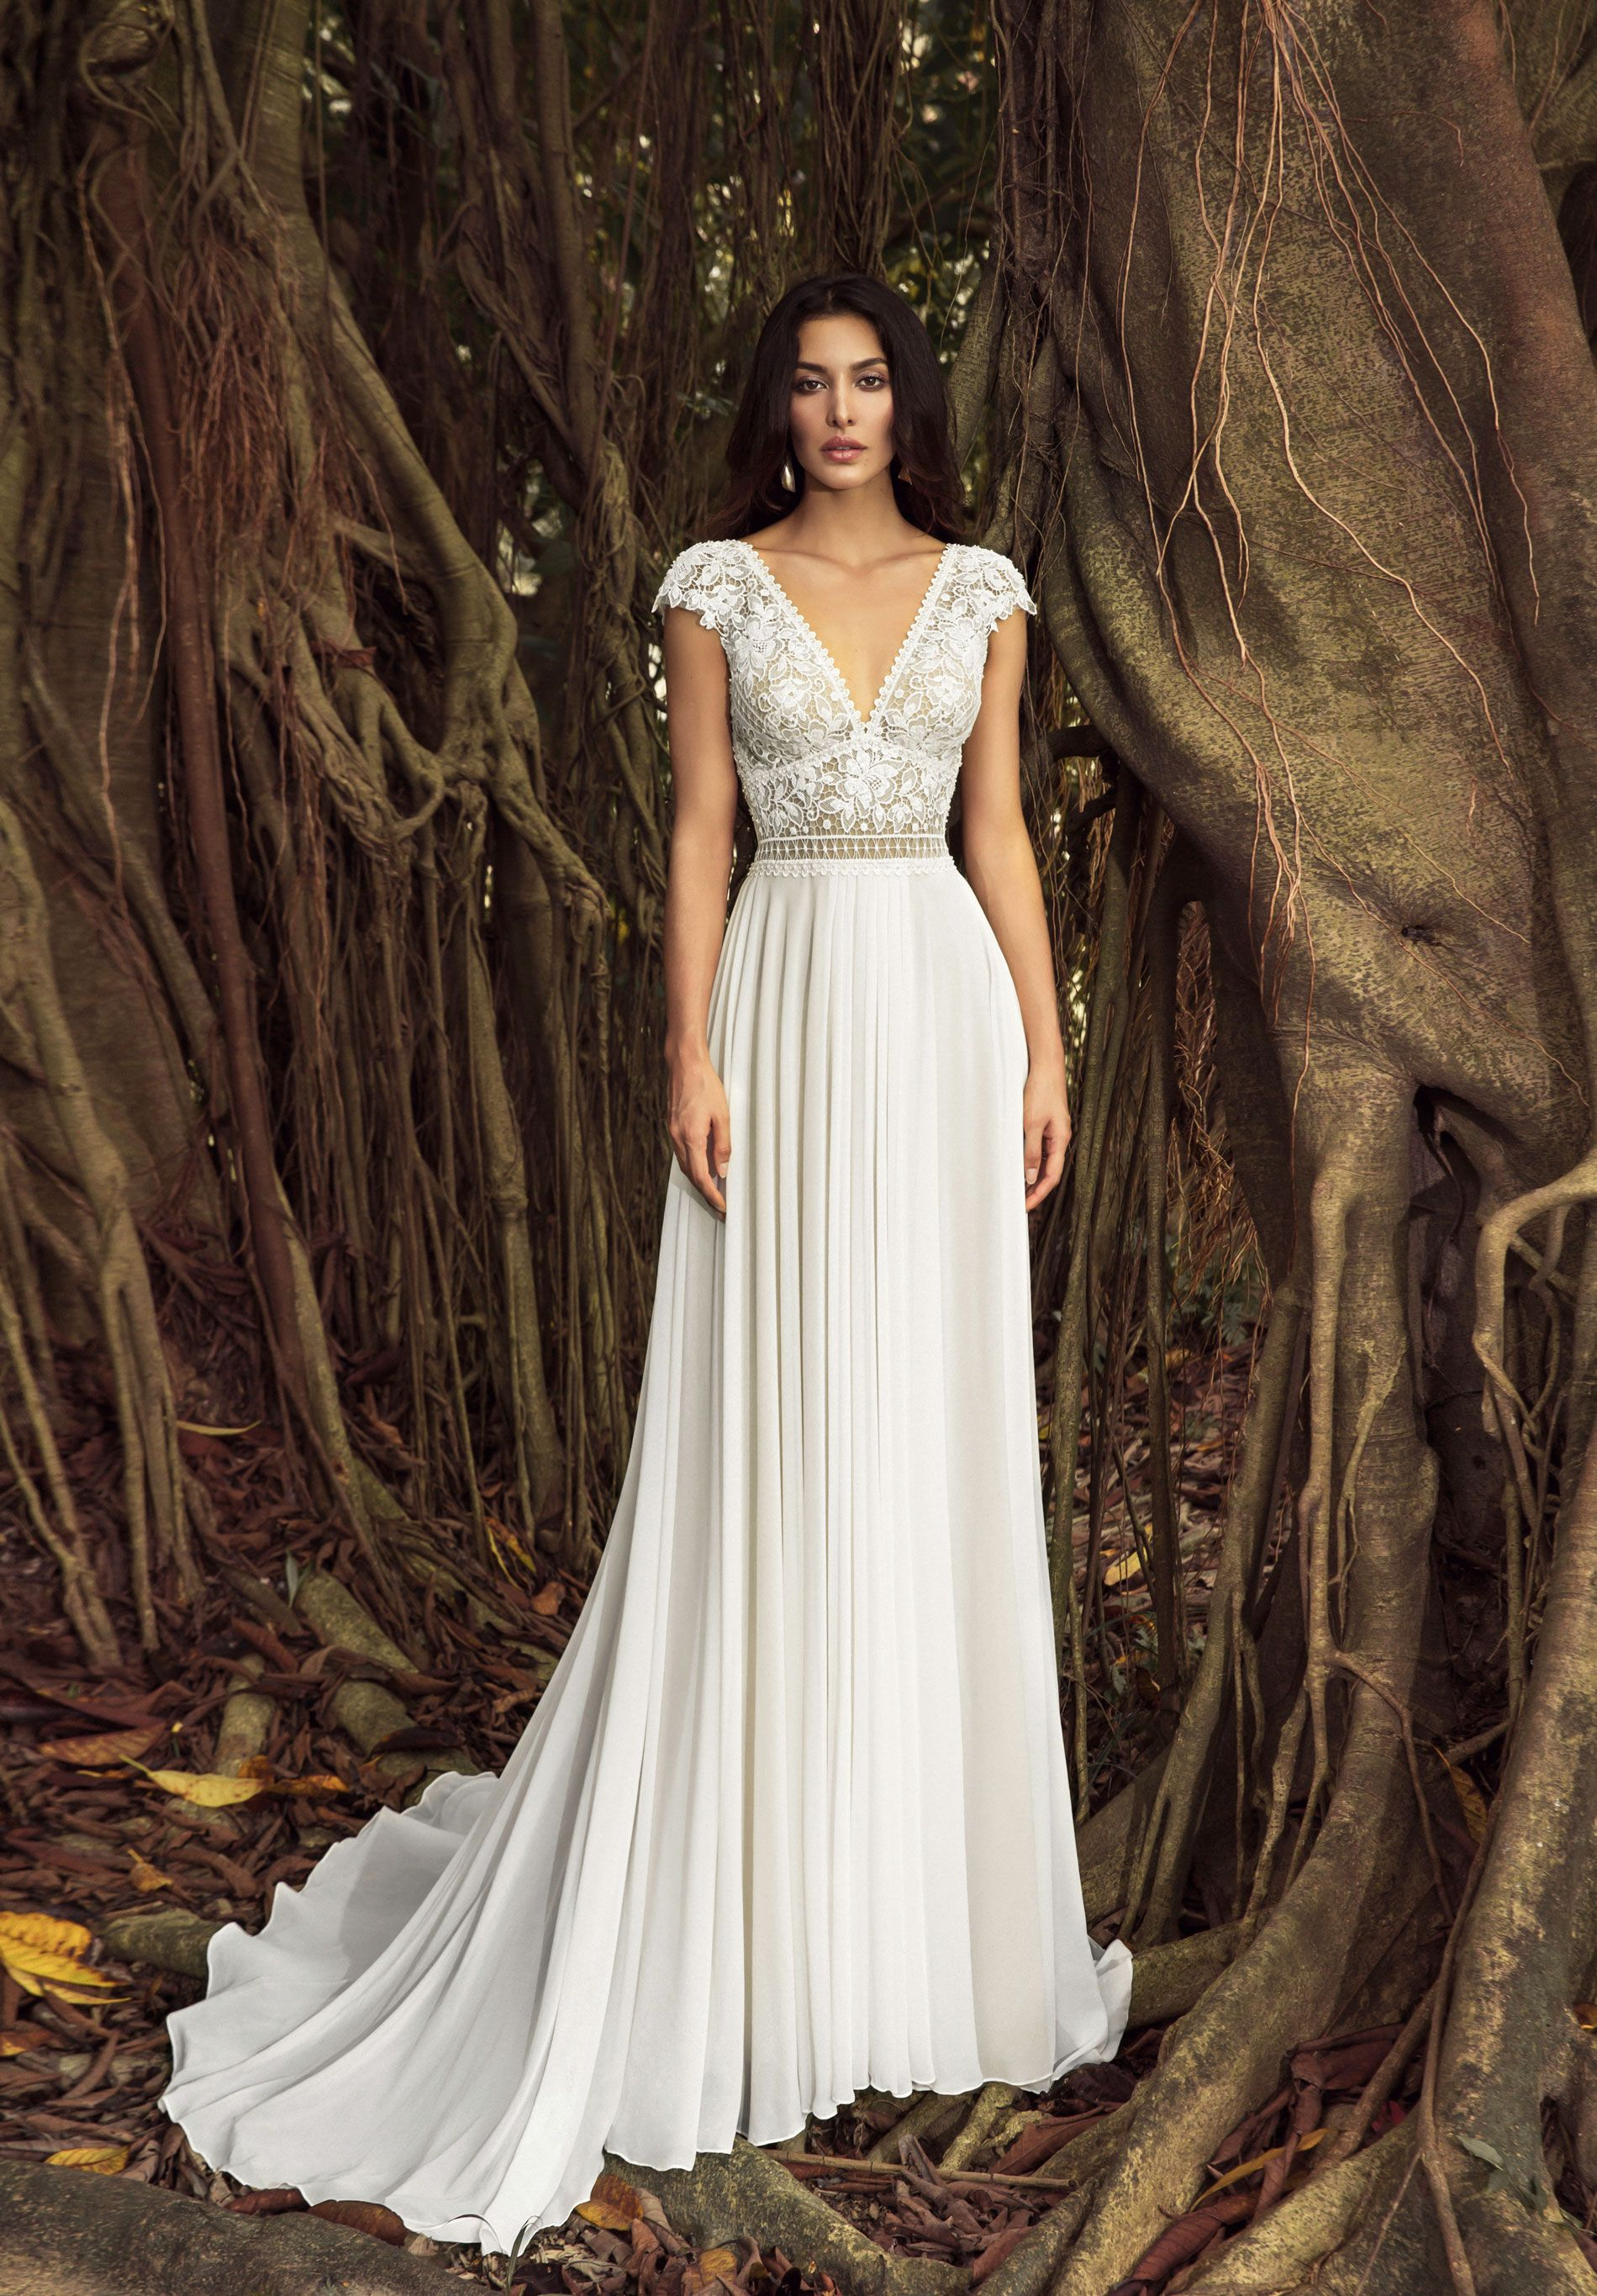 39f6cc714683 Kady - BRIDAL - Chic Nostalgia - Bohemian and Romantic Wedding Dresses